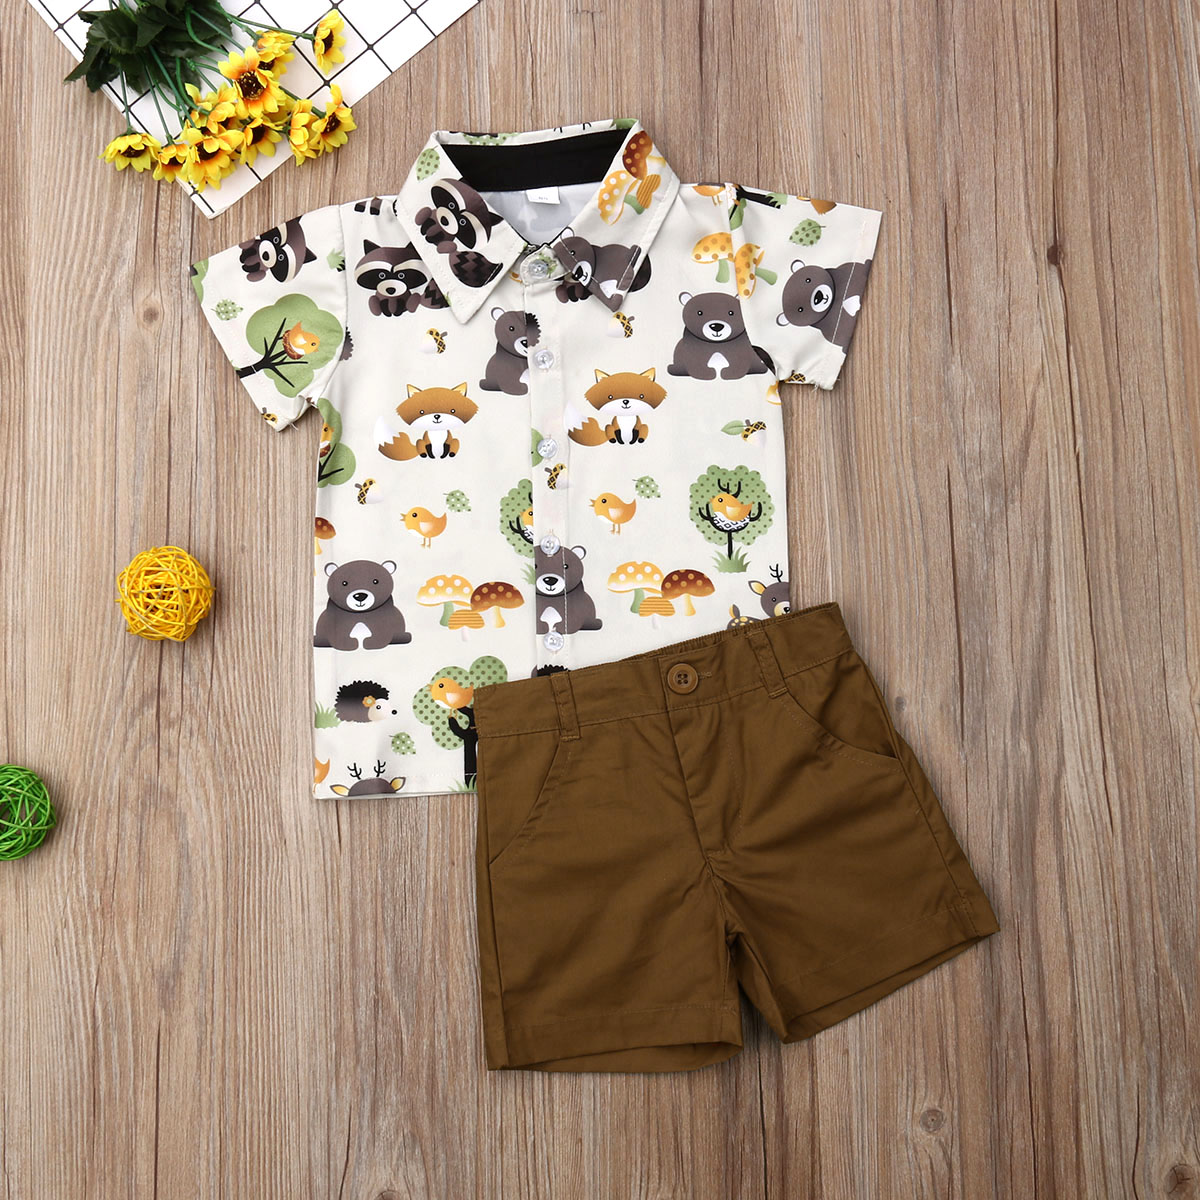 Pudcoco Summer Toddler Baby Boy Clothes Cute Animals Print Shirt Tops Short Pants 2Pcs Outfits Formal Gentleman Clothes Summer